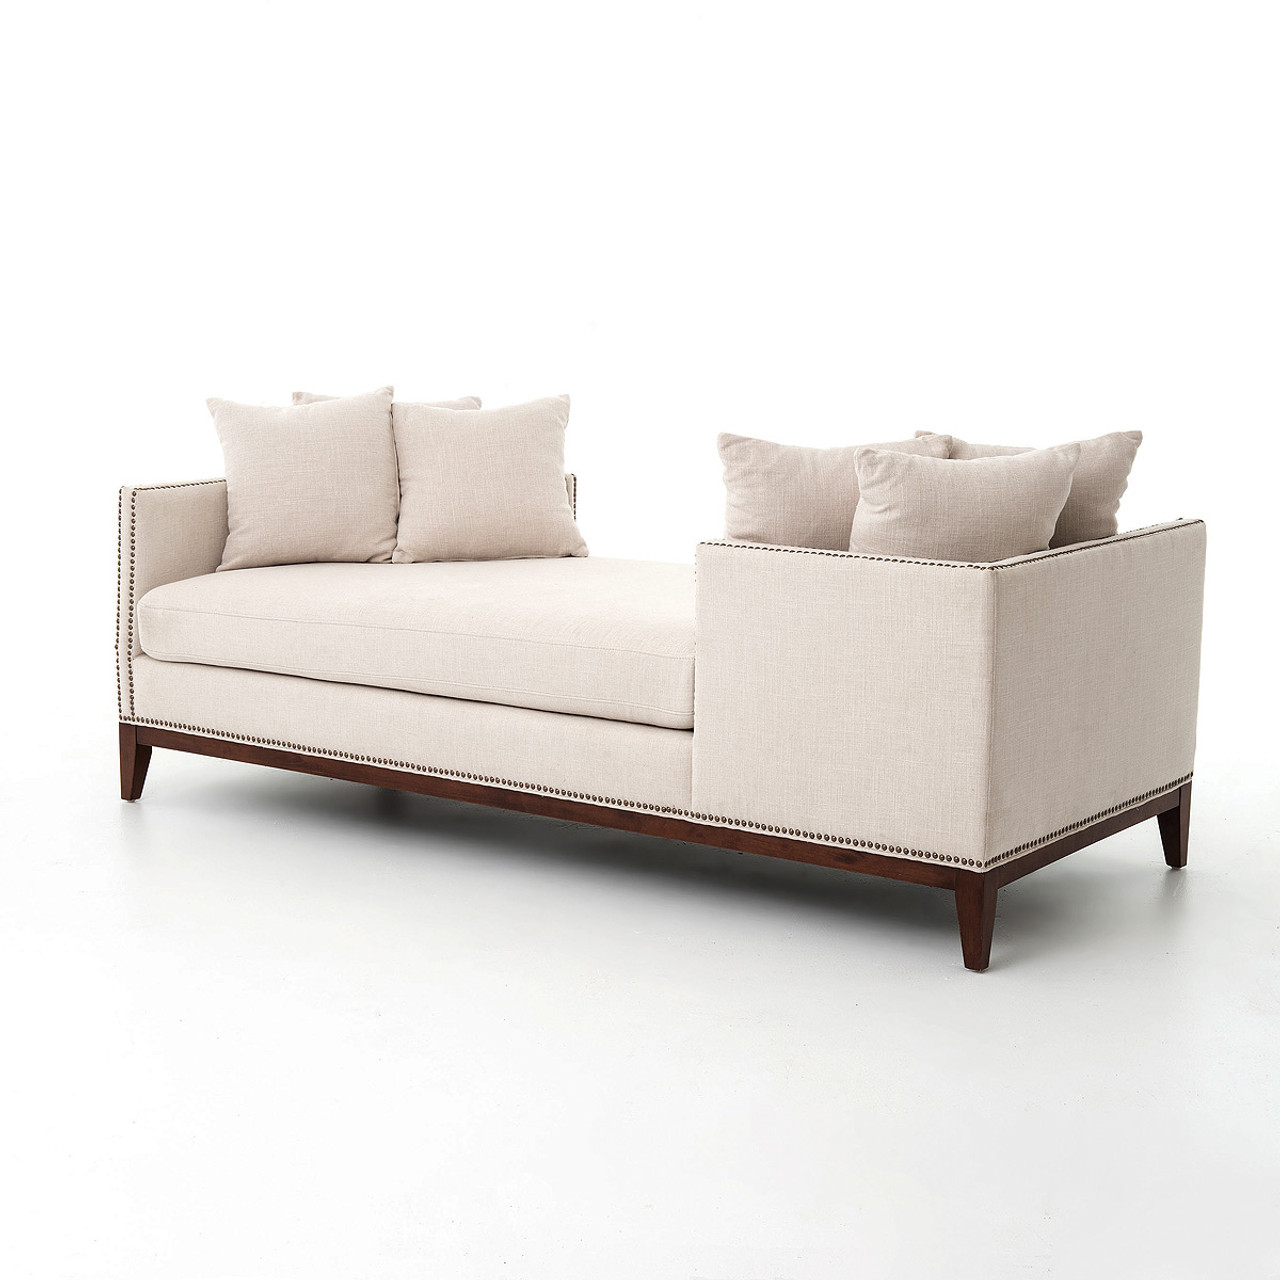 Kensington Beige Upholstered Double Chaise Daybed  sc 1 st  Zin Home : double chaise - Sectionals, Sofas & Couches